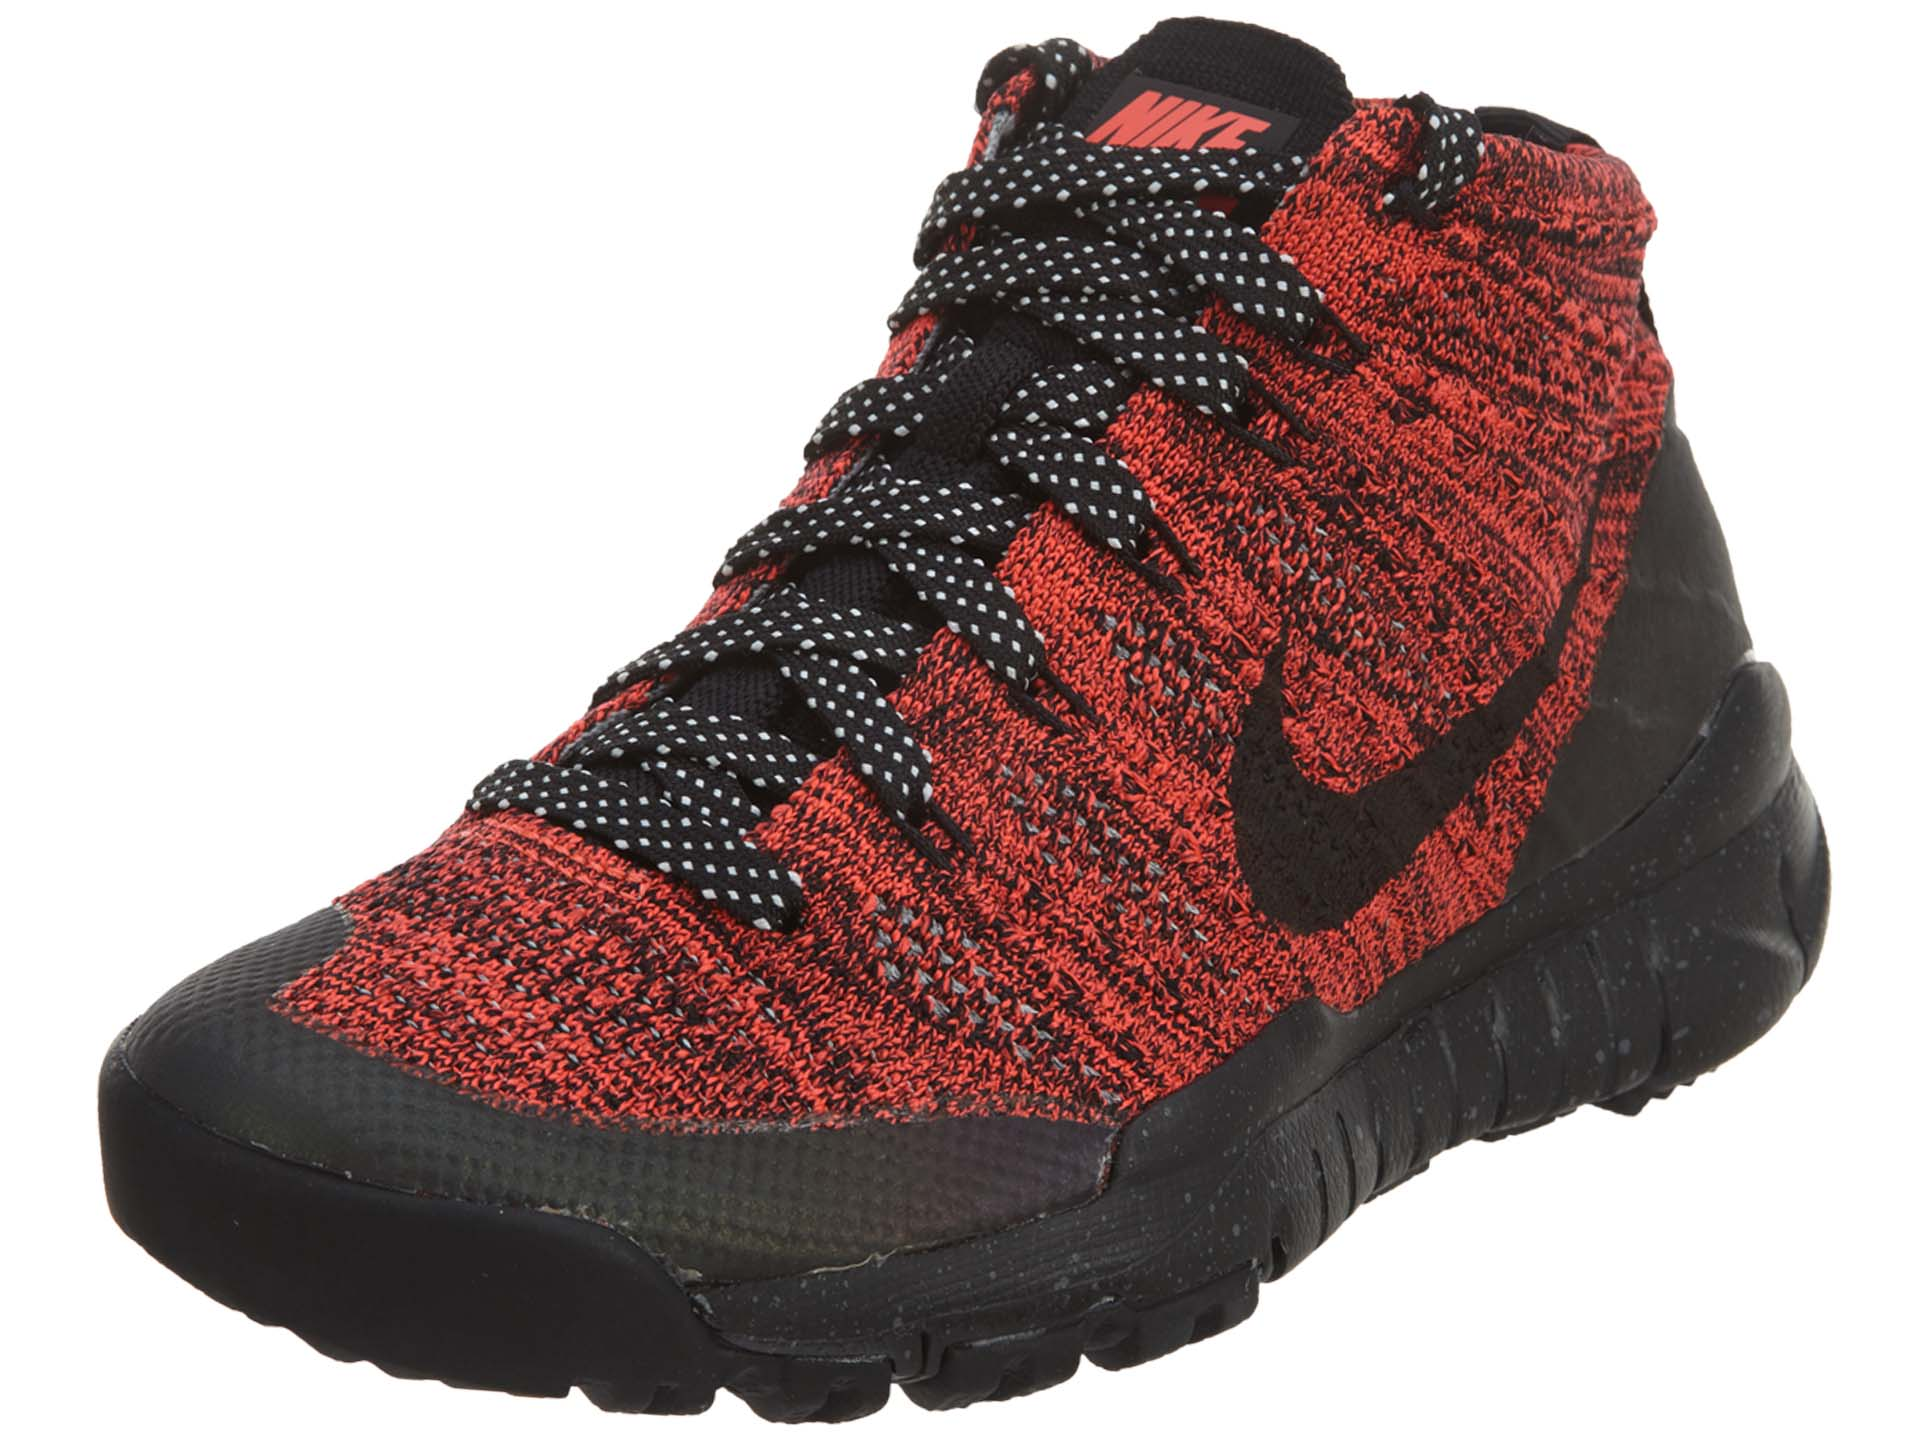 3800323fc52ea Details about Nike Womens Flyknit Trainer Chukka Sneakerboot Sneakers  805093-603